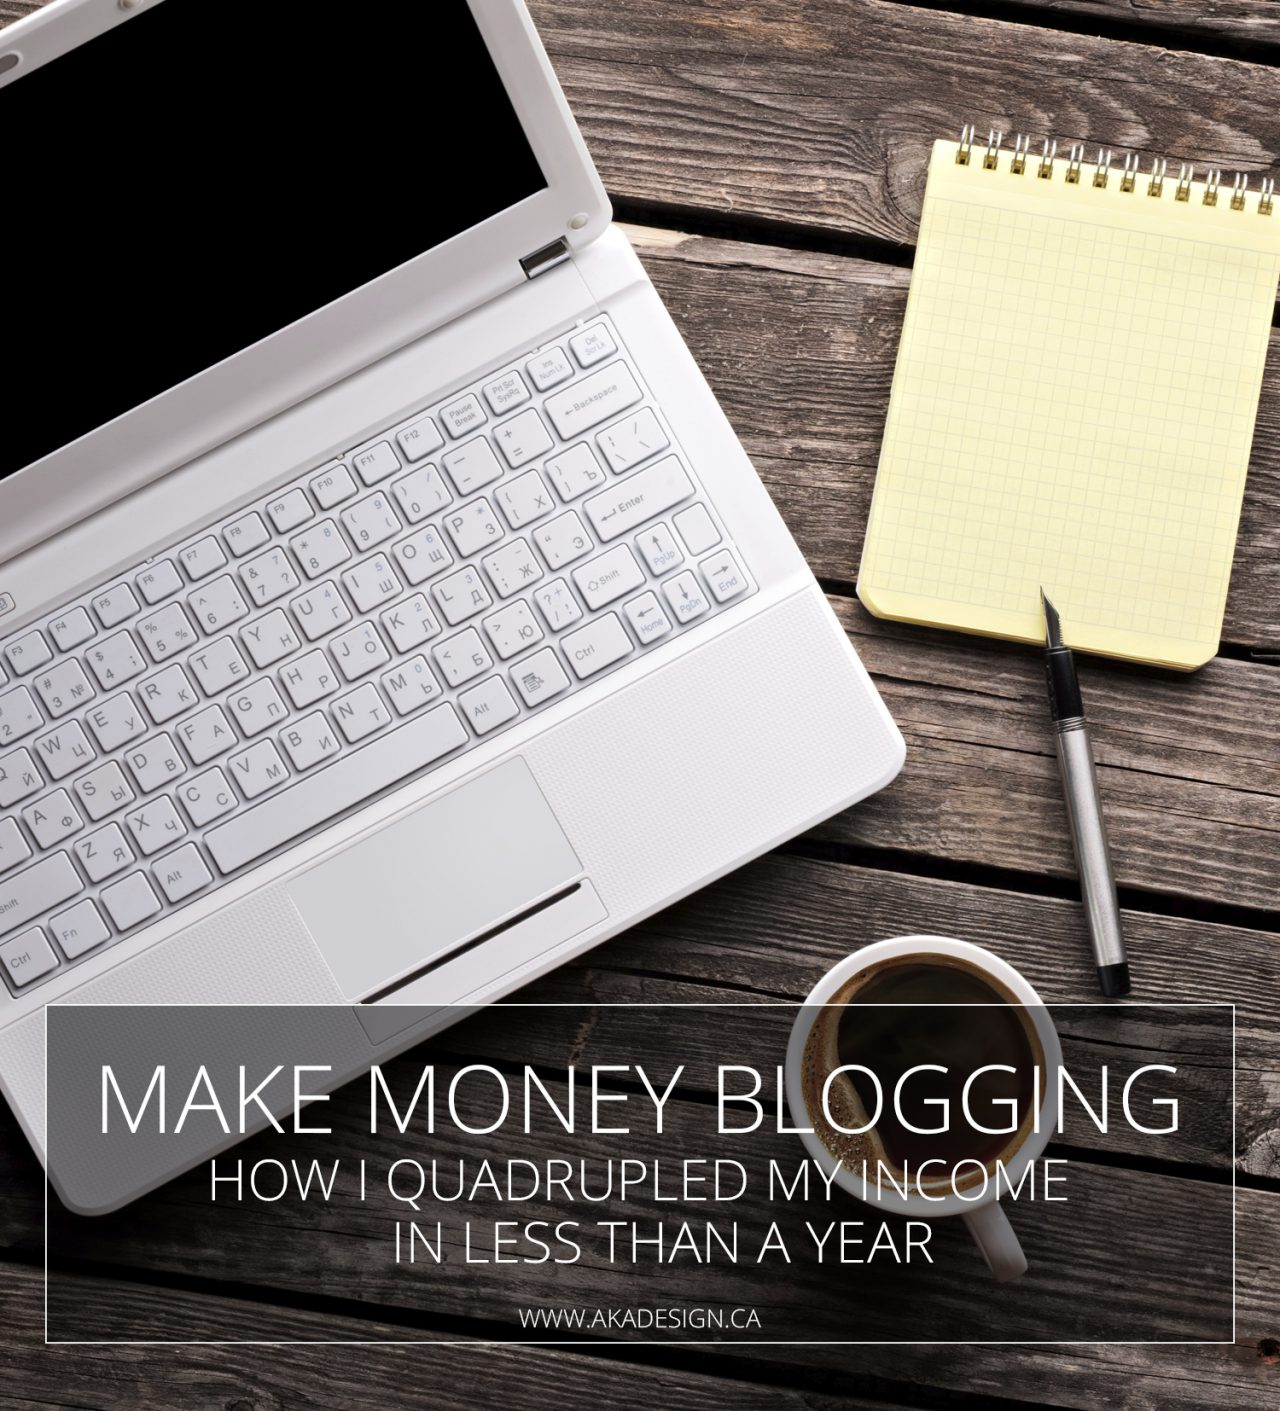 Make money blogging: how I quadrupled my income in less than a year!